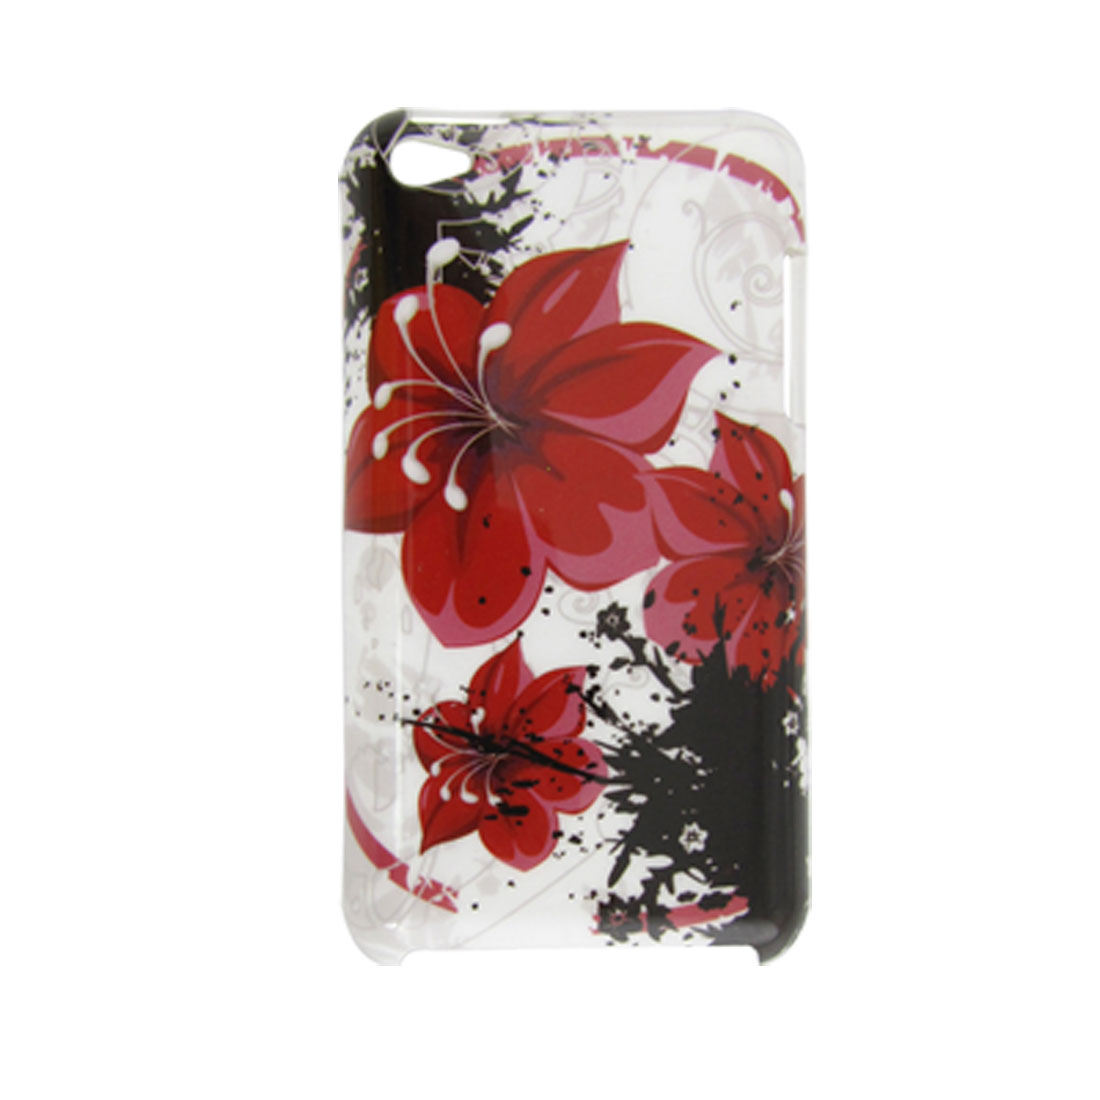 Floral Pattern Hard Plastic IMD Back Case for iPod Touch 4G